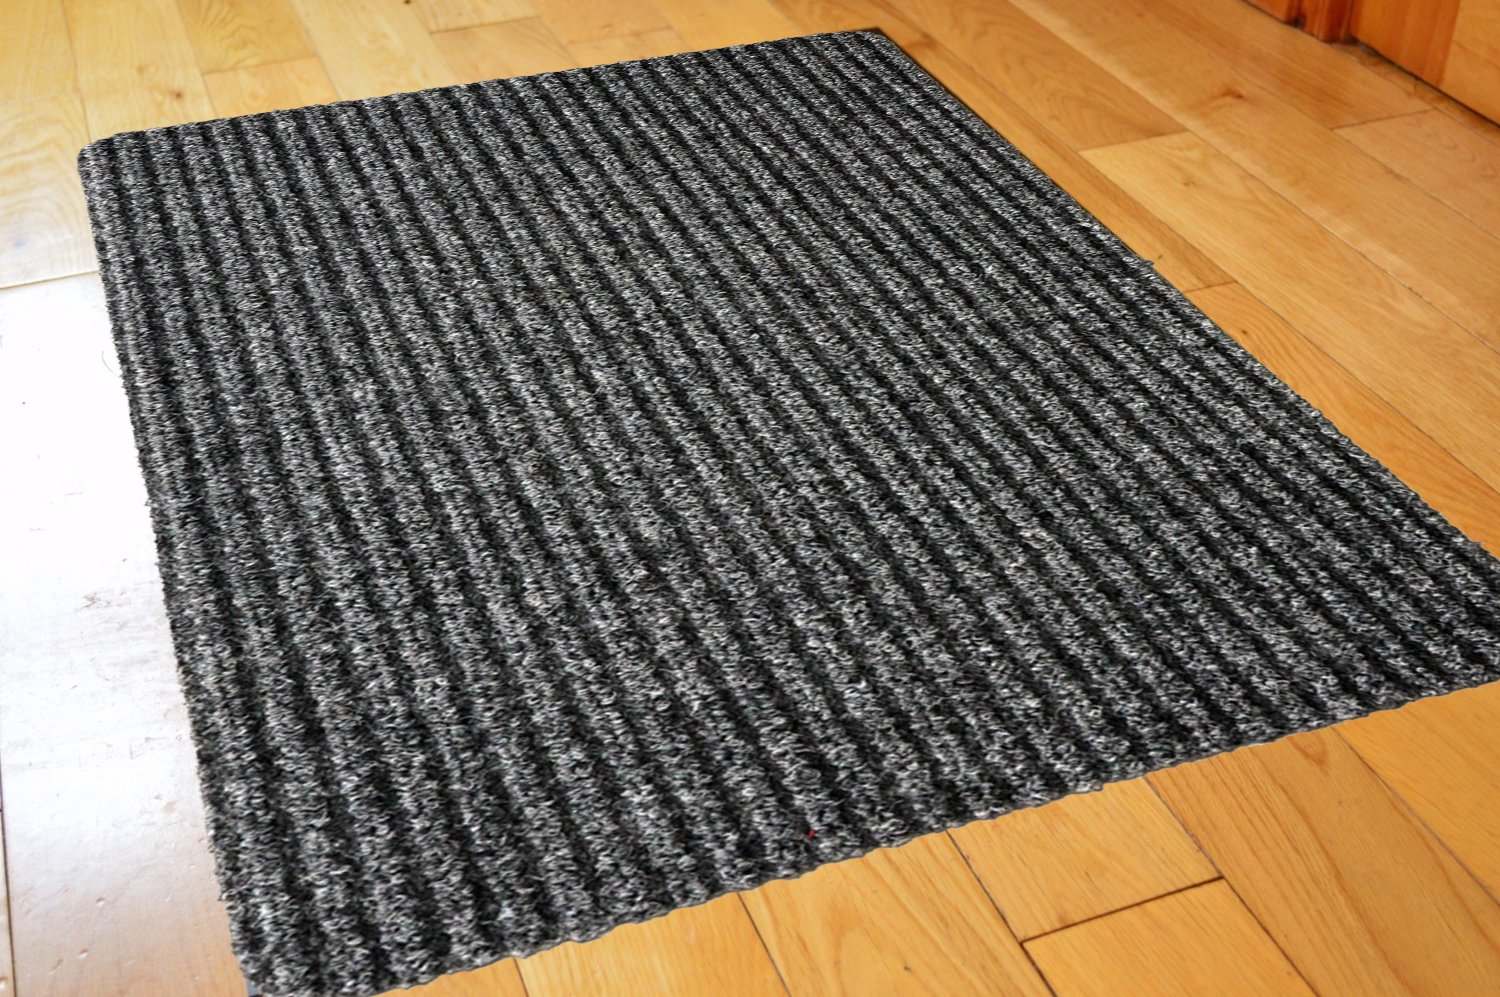 Large Rubber Backed Carpet Mats Carpet Vidalondon